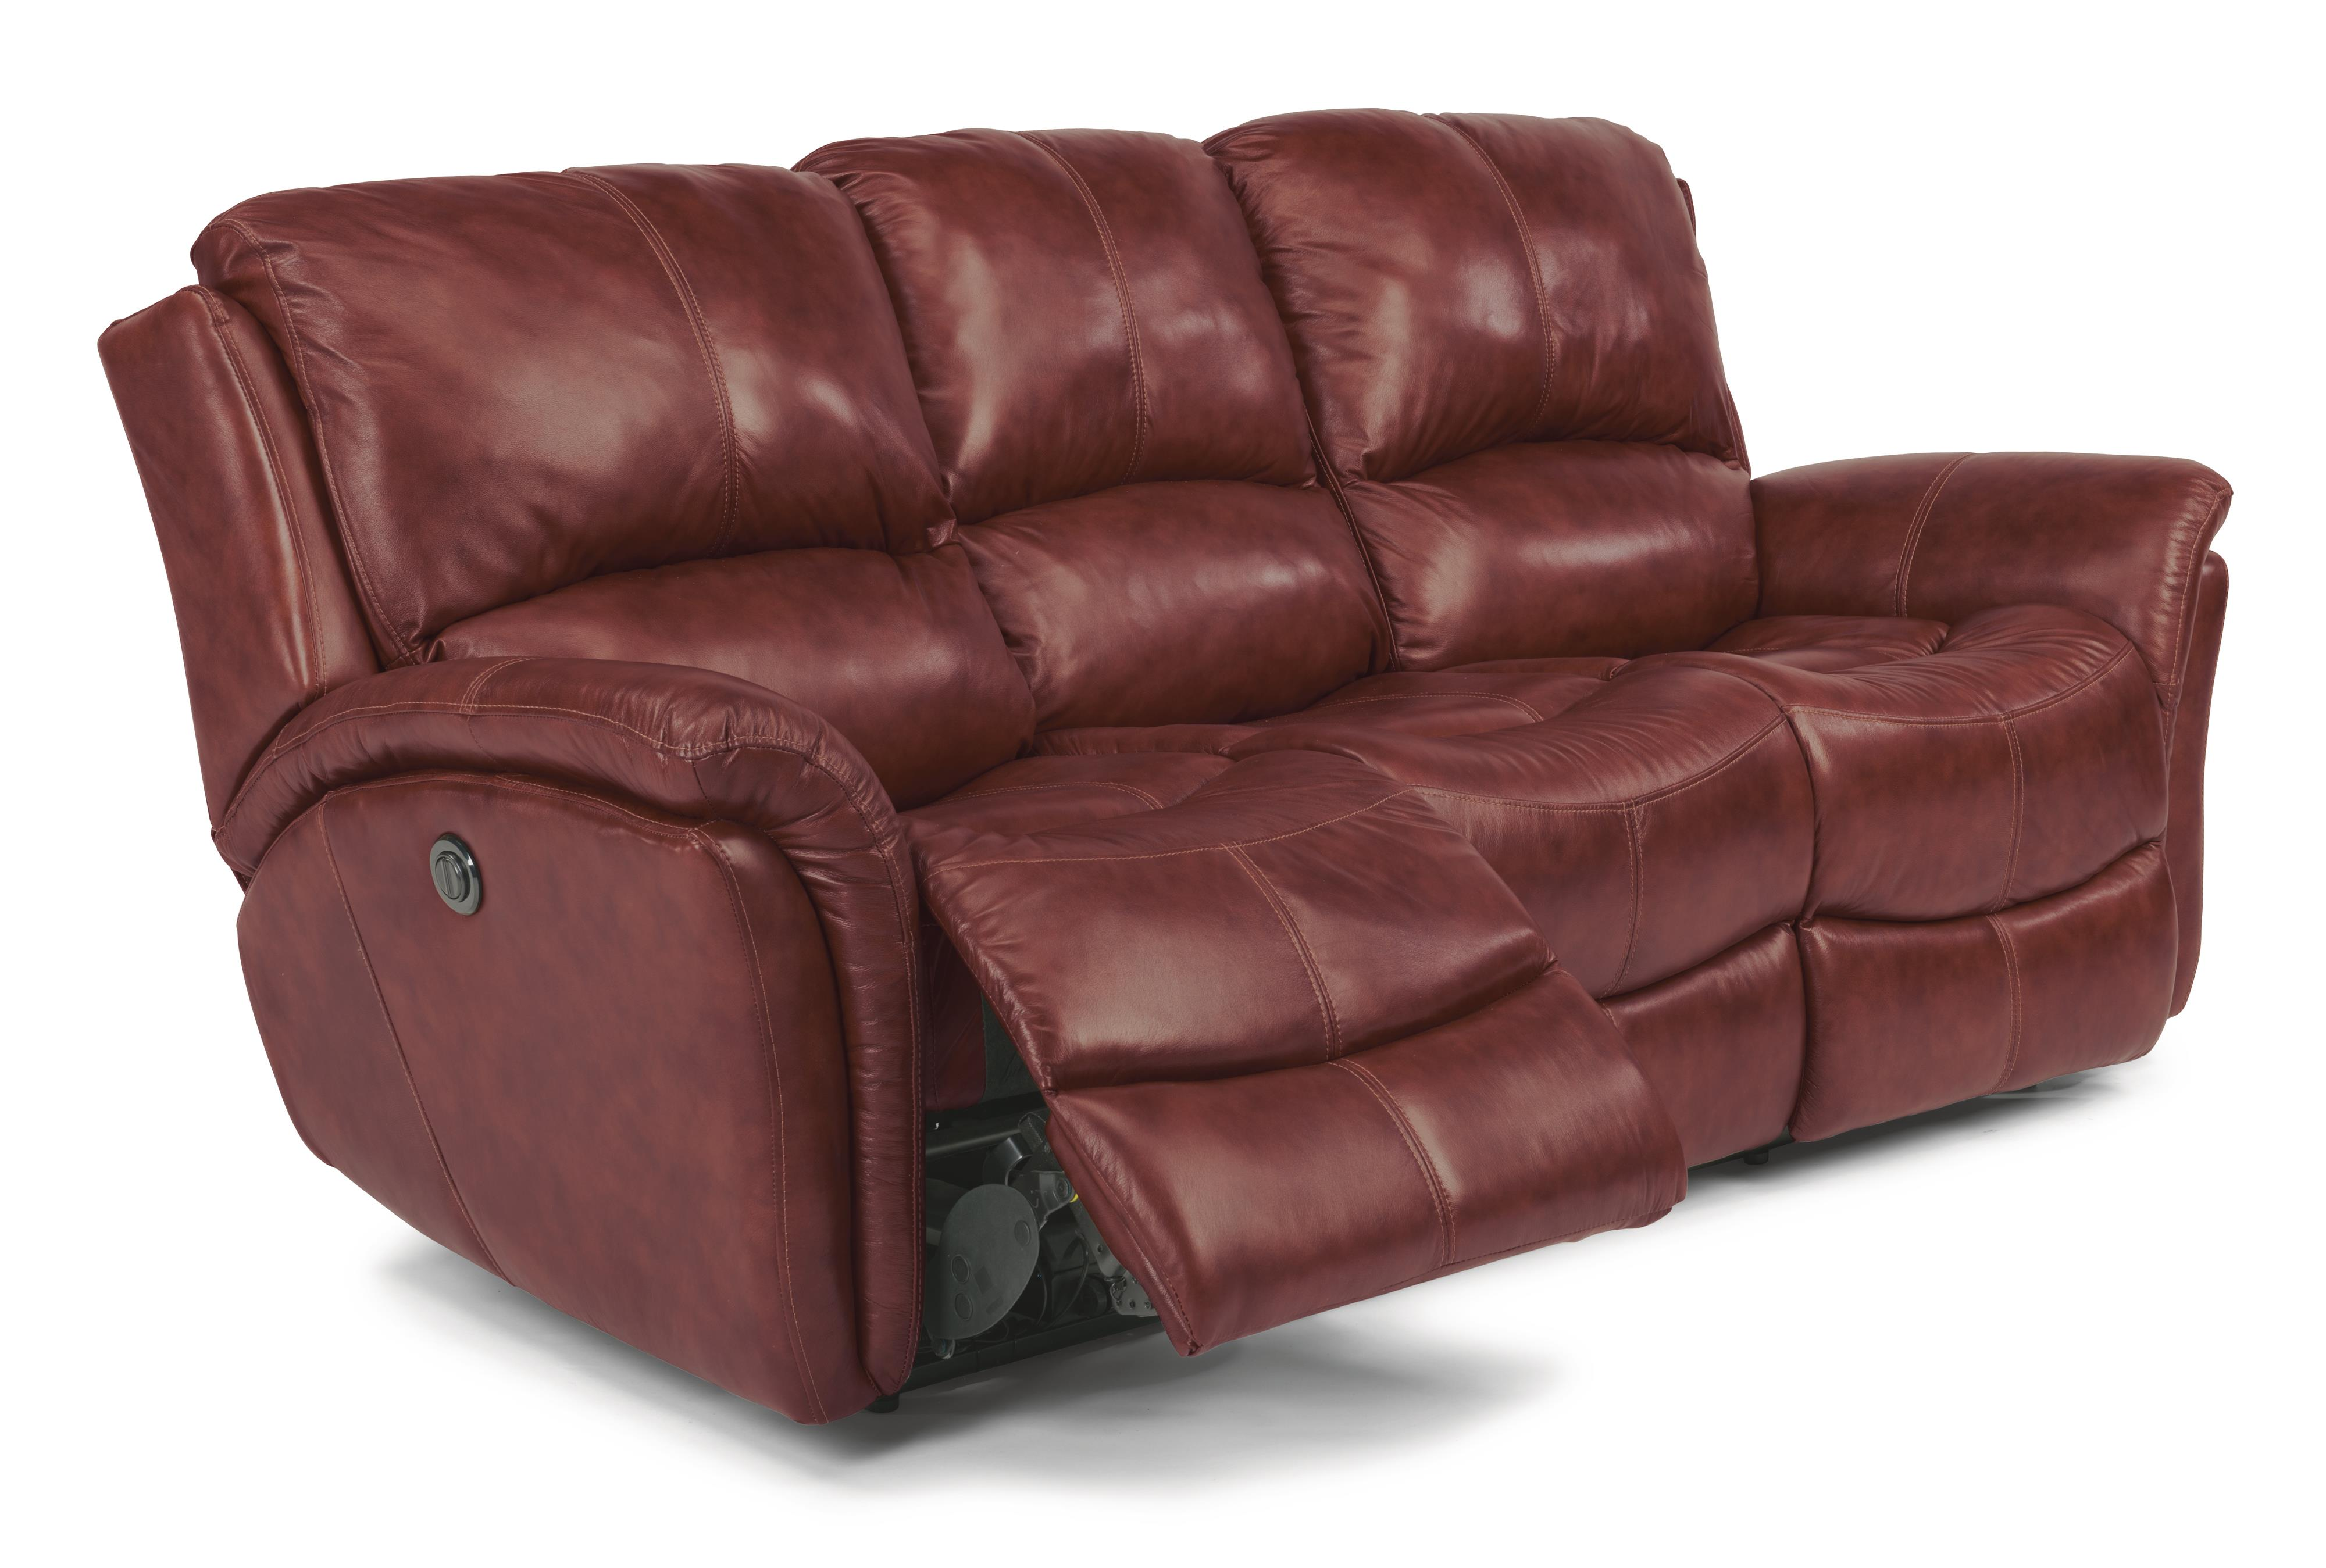 flexsteel recliner sofa two seater covers latitudes dominique casual reclining with